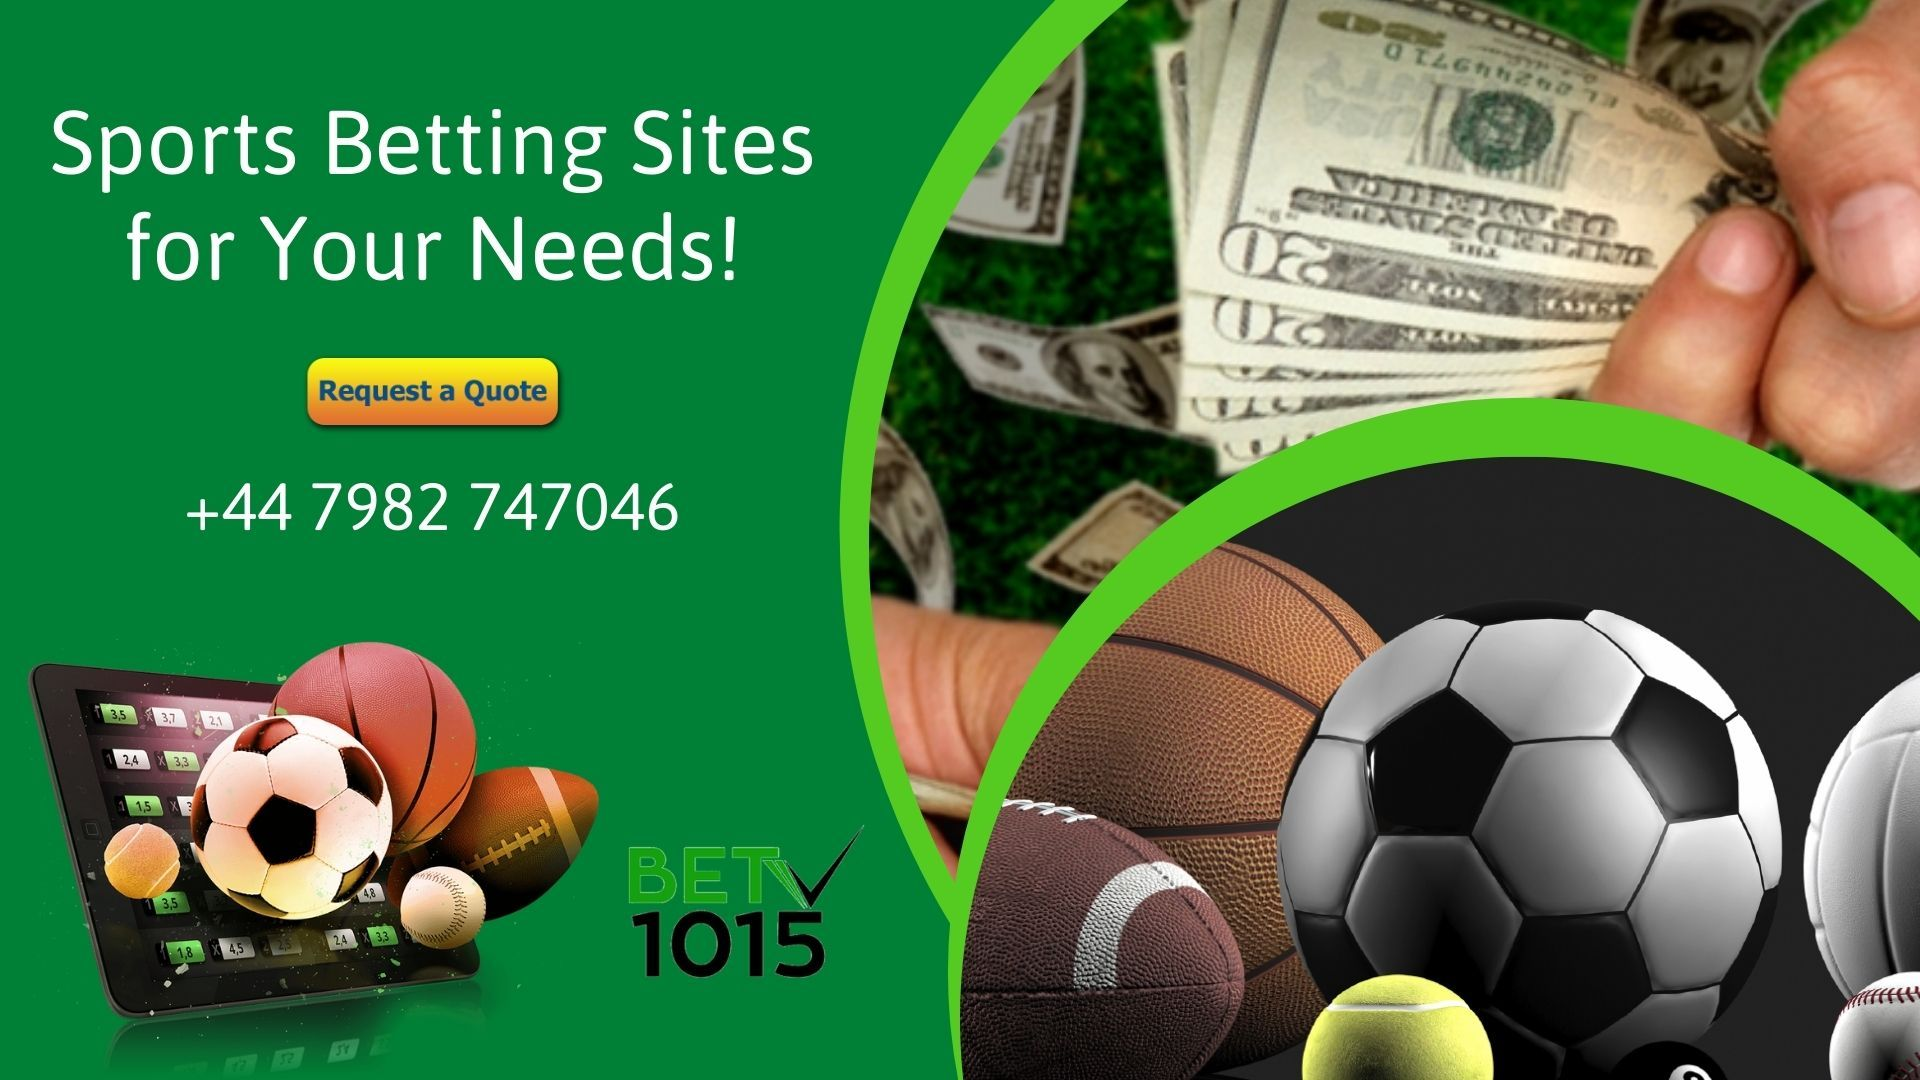 Best online betting sites soccer quotes hkjc horse race betting limited brands